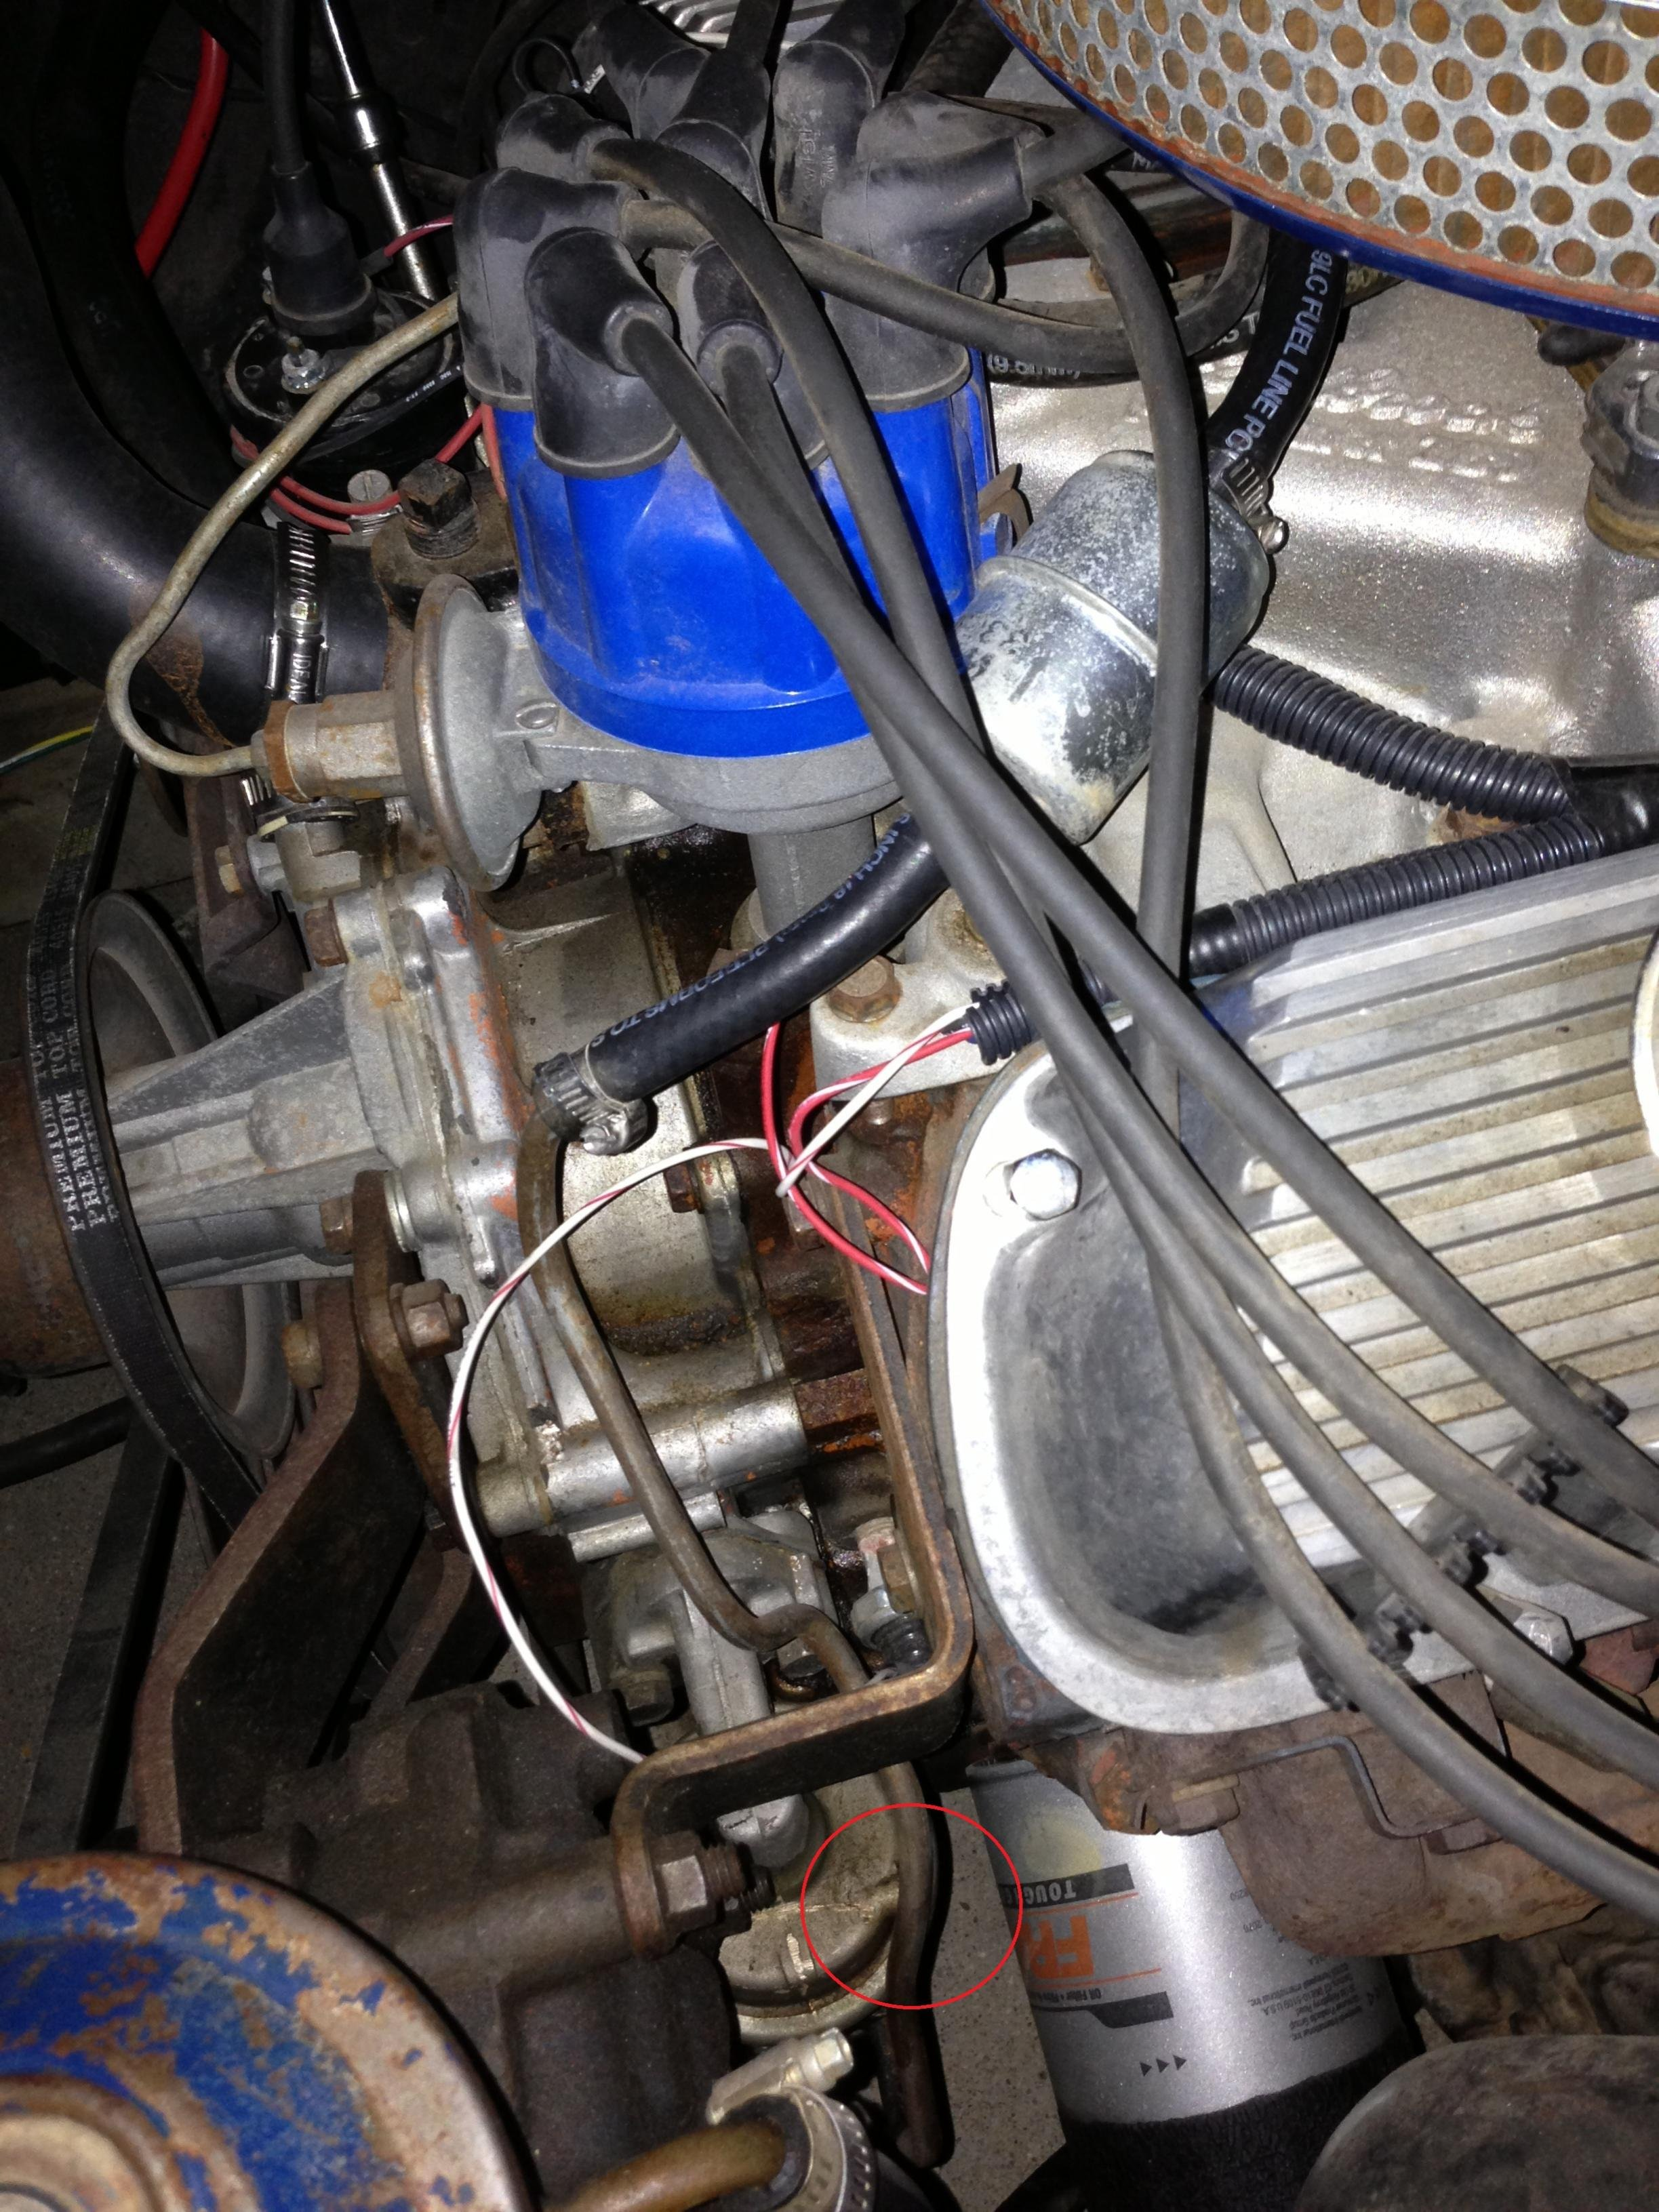 ... Click image for larger version Name: Fuel Pump and Fuel Fiter  Circled.jpg Views